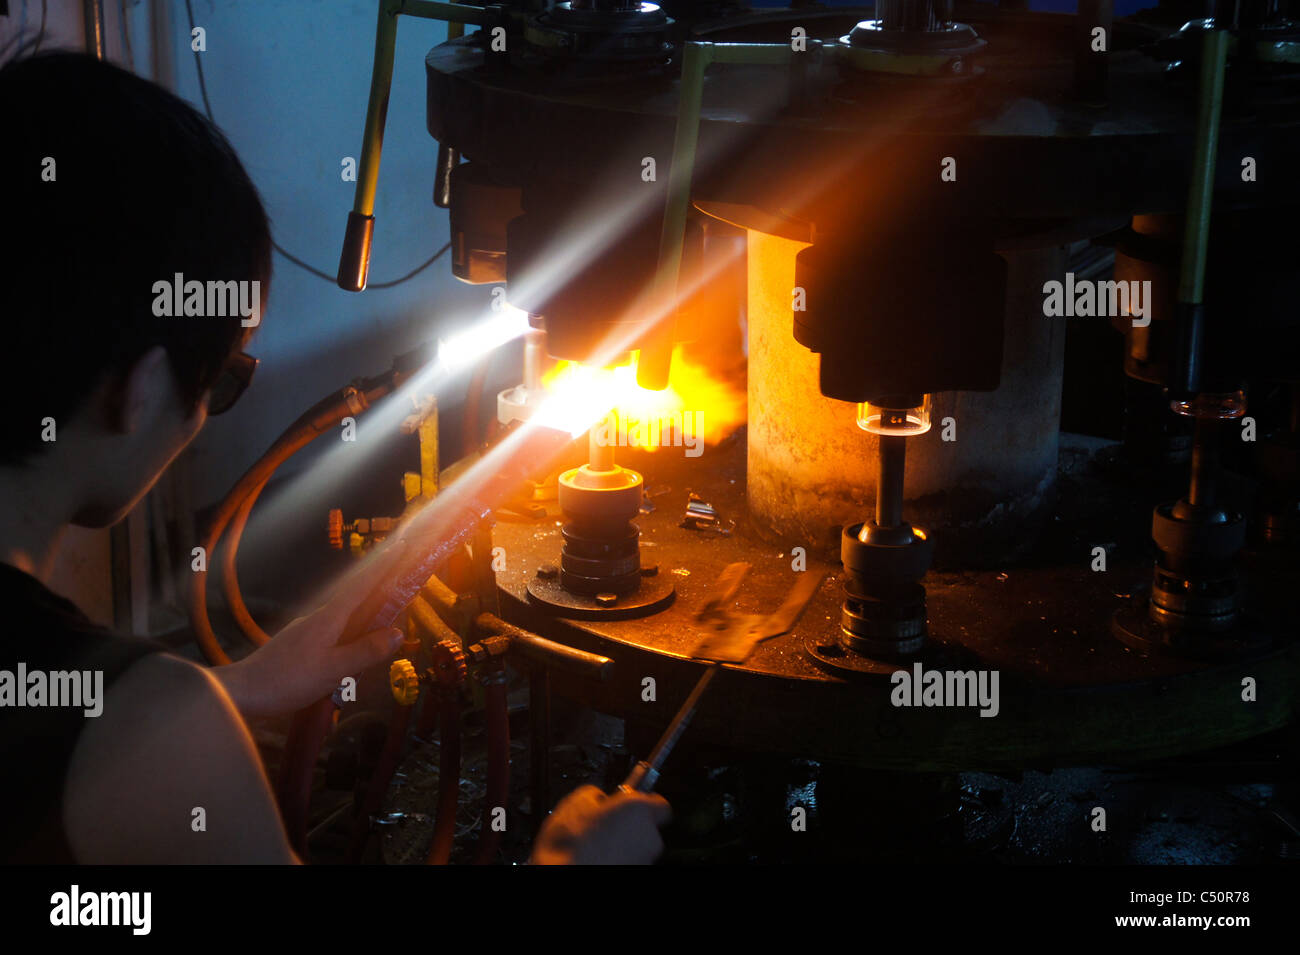 Production process of solar evacuated tube collectors in Shanghai China - Stock Image